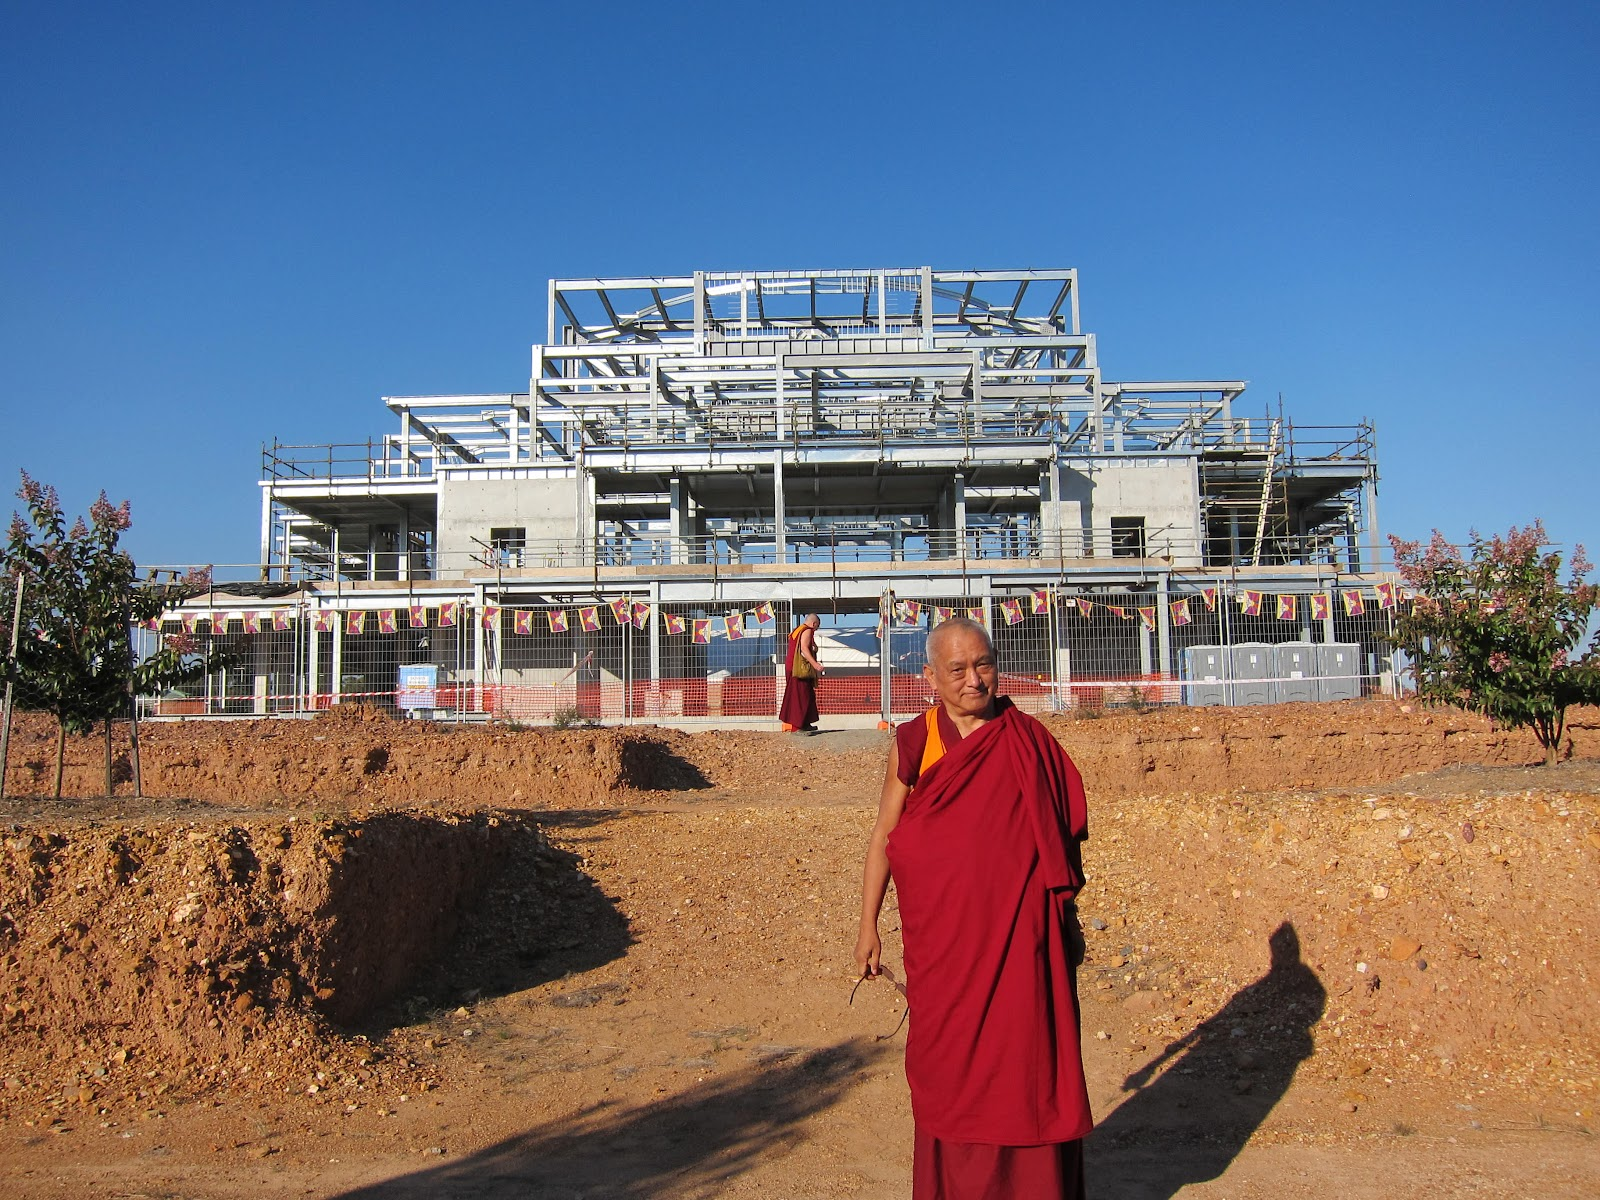 The Great Stupa of Universal Compassion being built in Bendigo, VIC Australia